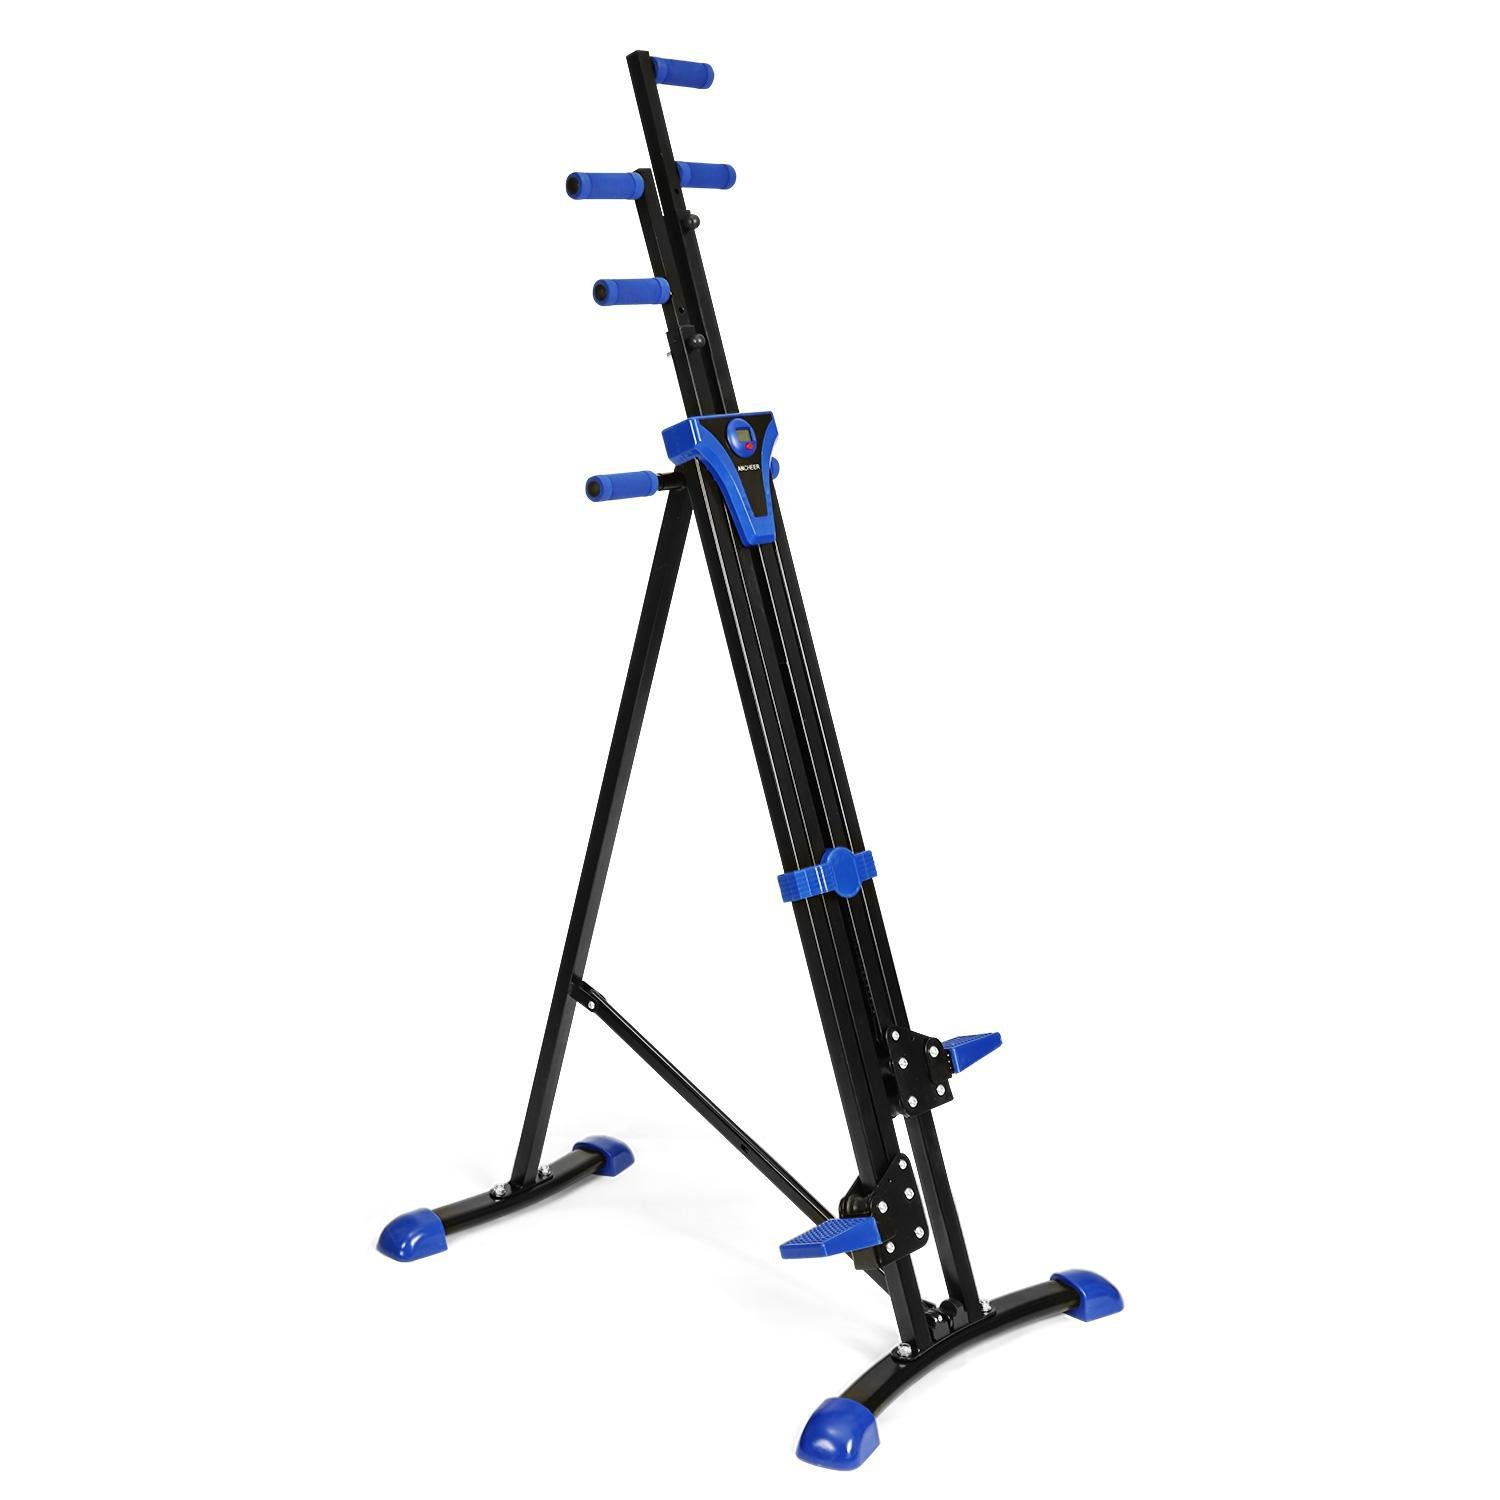 PEATAO Vertical Climber Stepper 2 In 1 Exercise Fitness Foldable Climbing Machine Stair